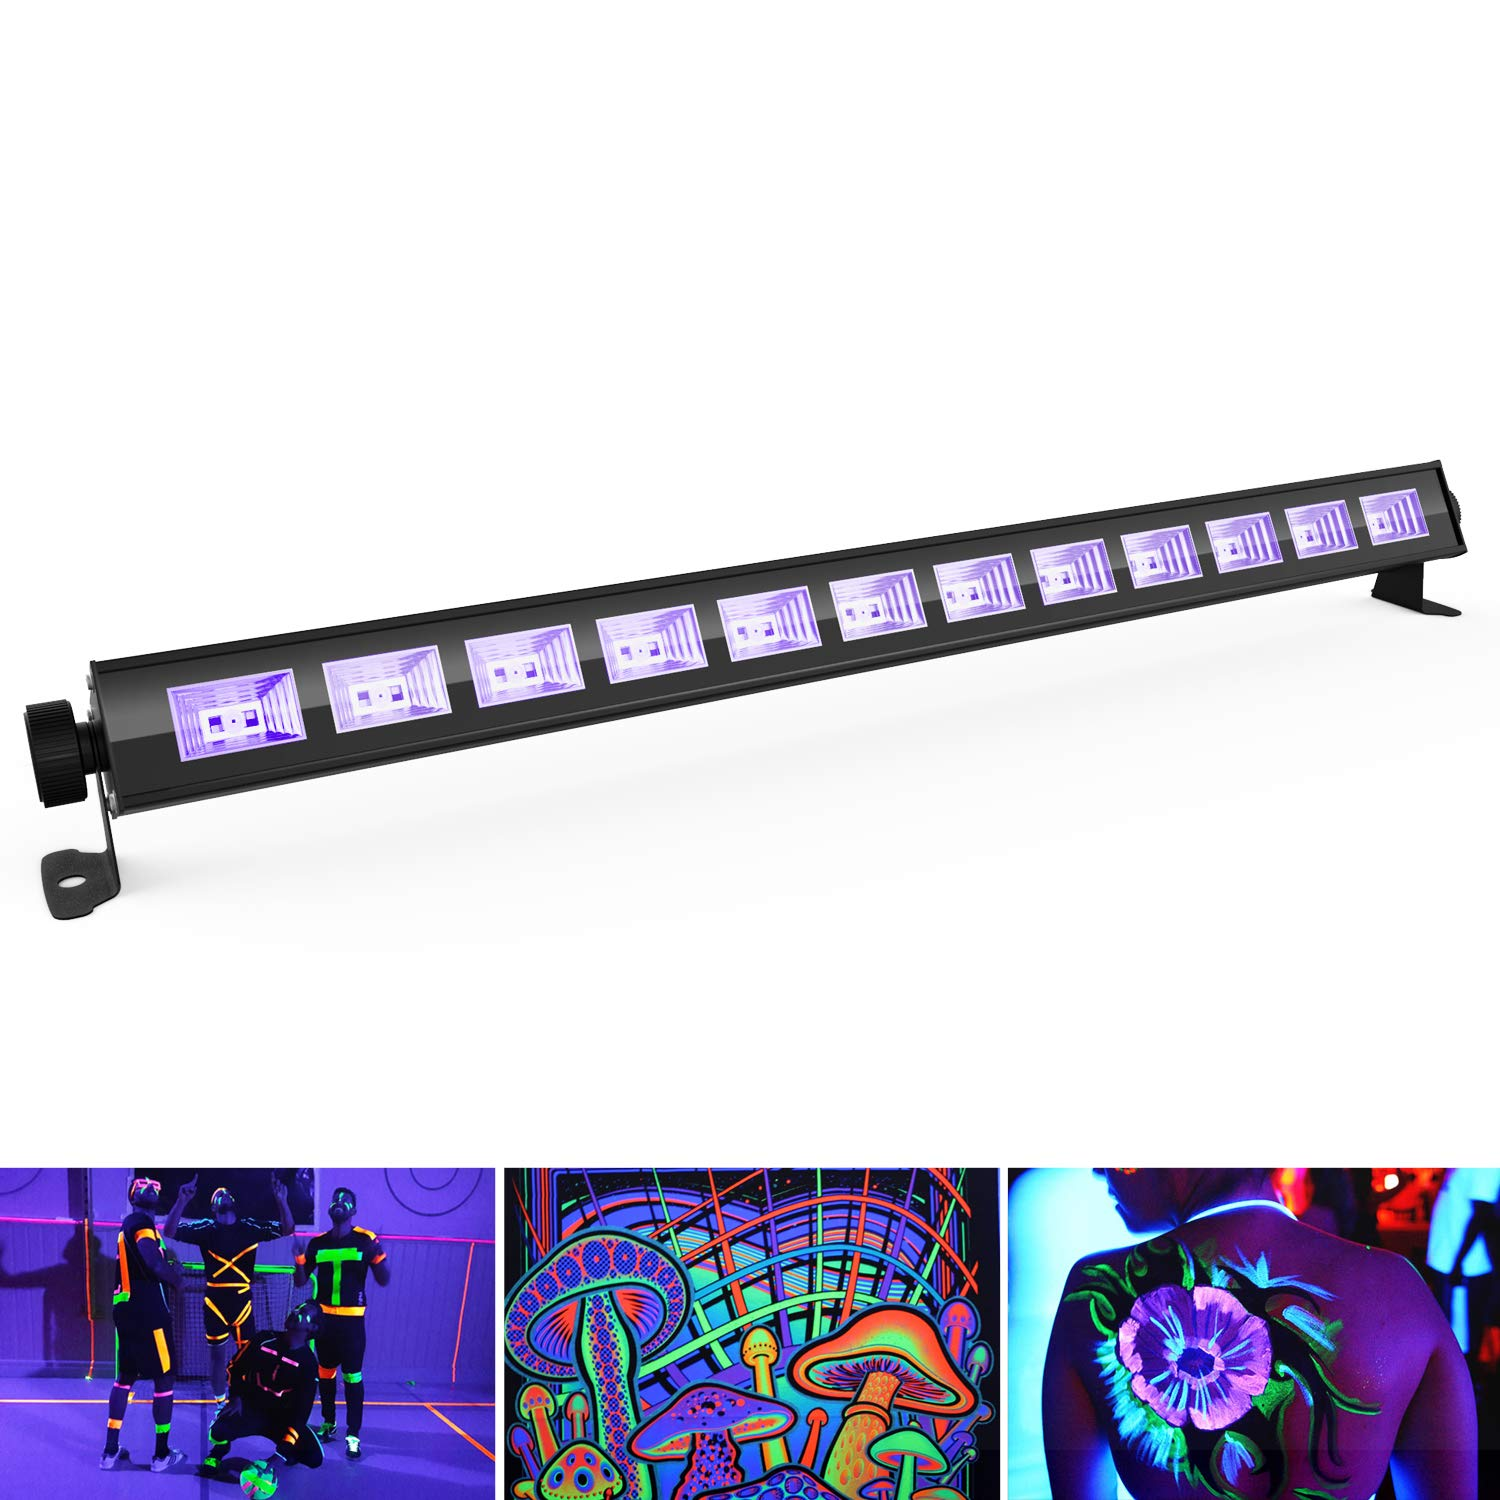 Black Light, SHENMATE 12 x 3W LED UV Bar with Flexible Mounting Brackets for Fluorescent Tapestry Poster, Glow Paint, Gym, Glow in The Dark Birthday Christmas New Year Party Decoration (Mental Casing) SM-12LED-01